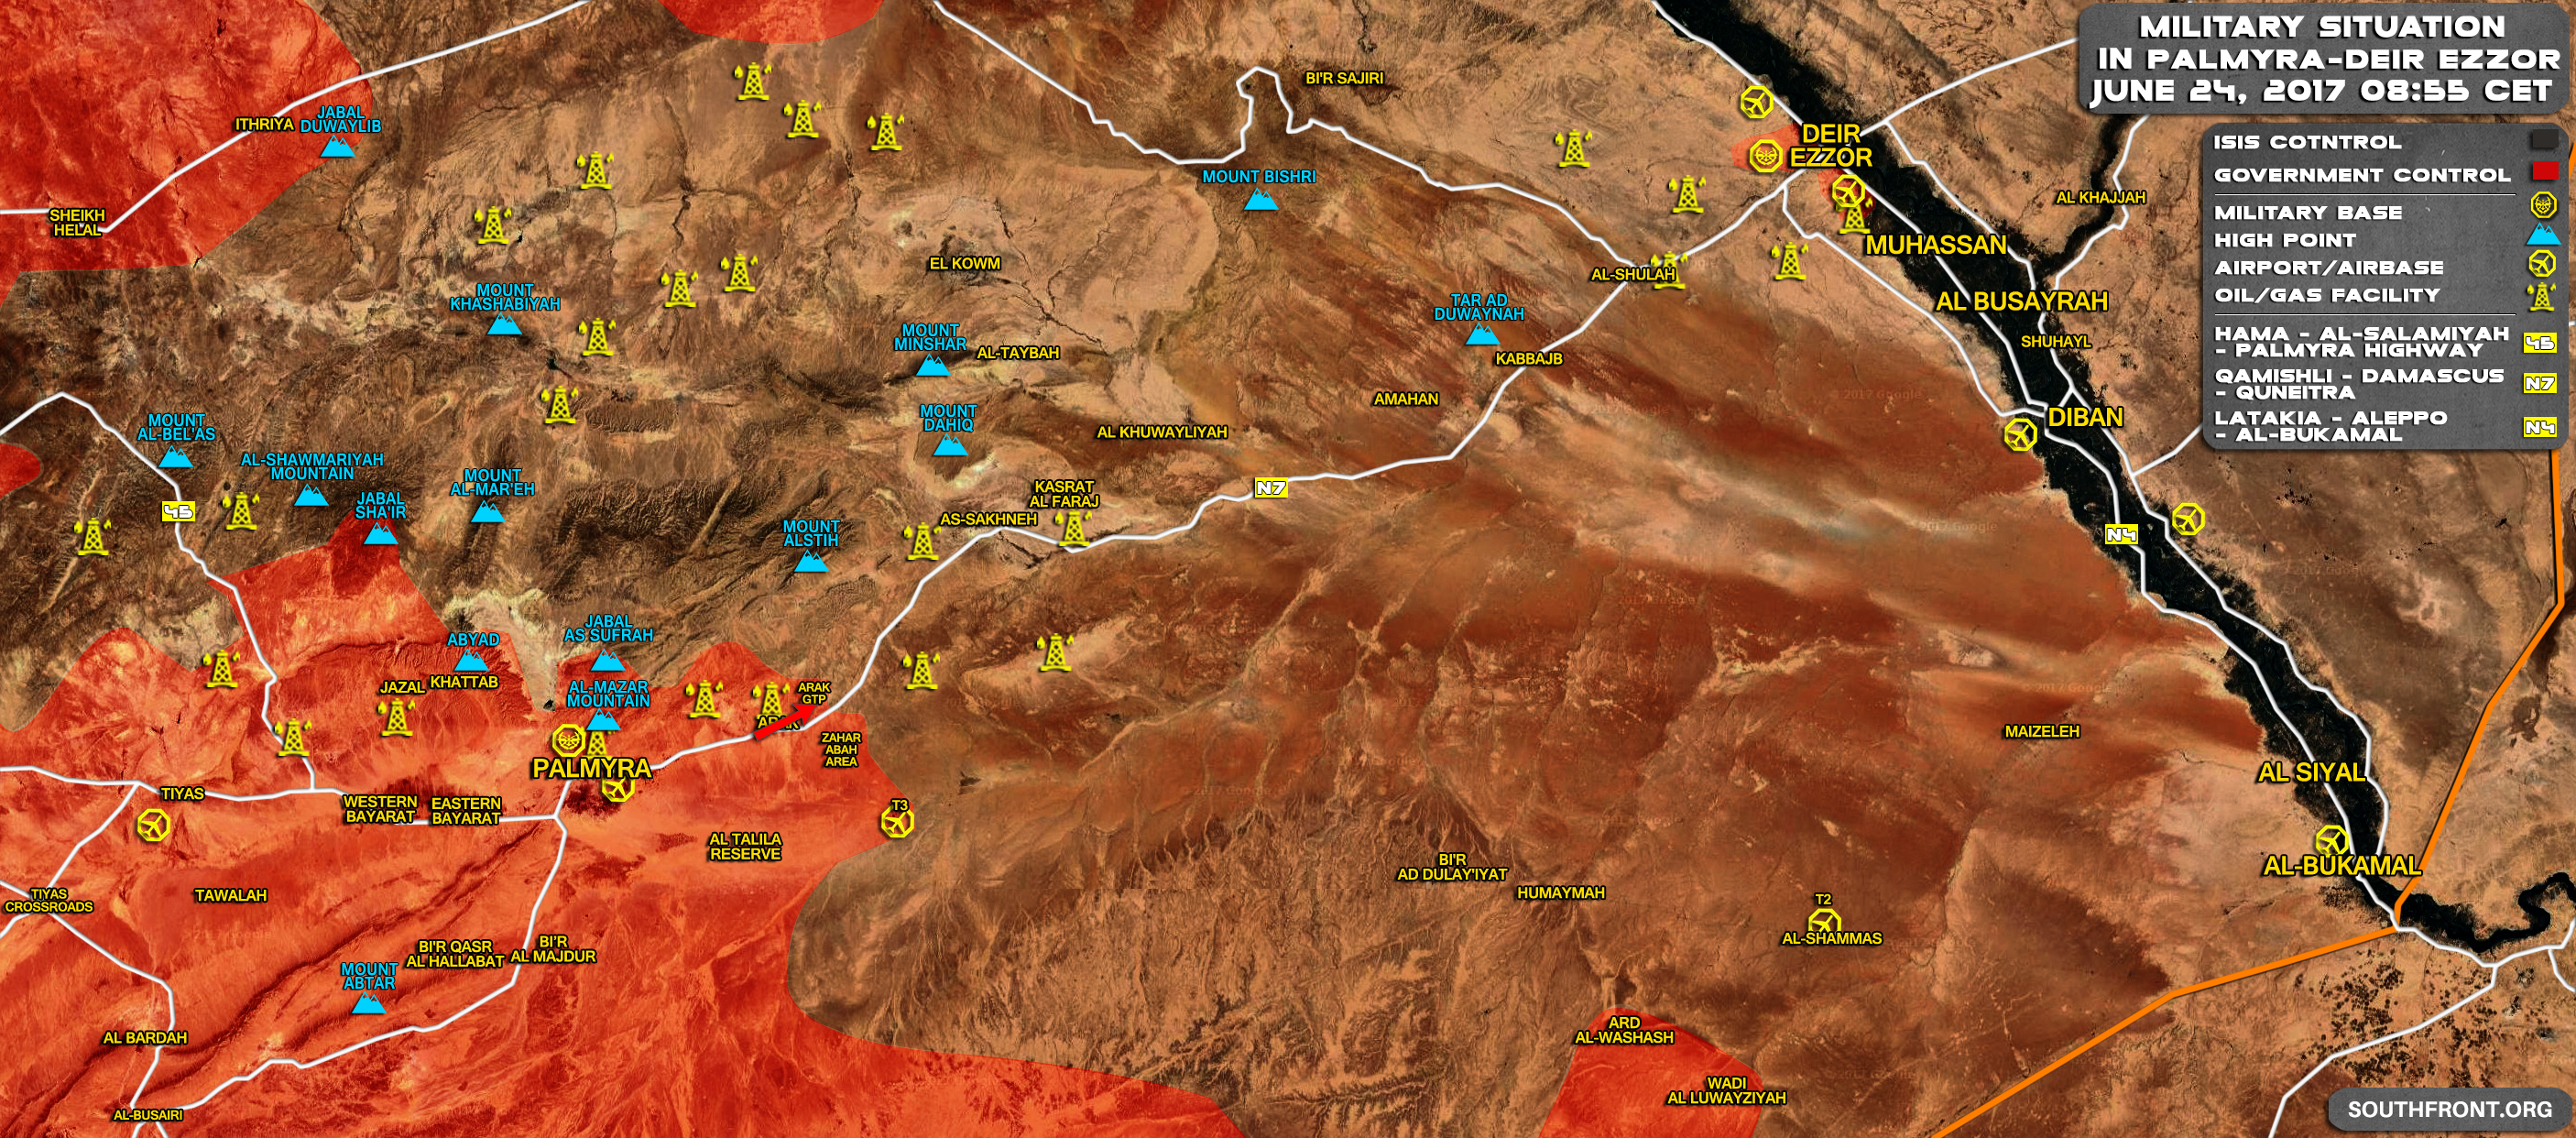 Map Update: Syrian Government Forces Advancing Along Palmyra-Deir Ezzor Road